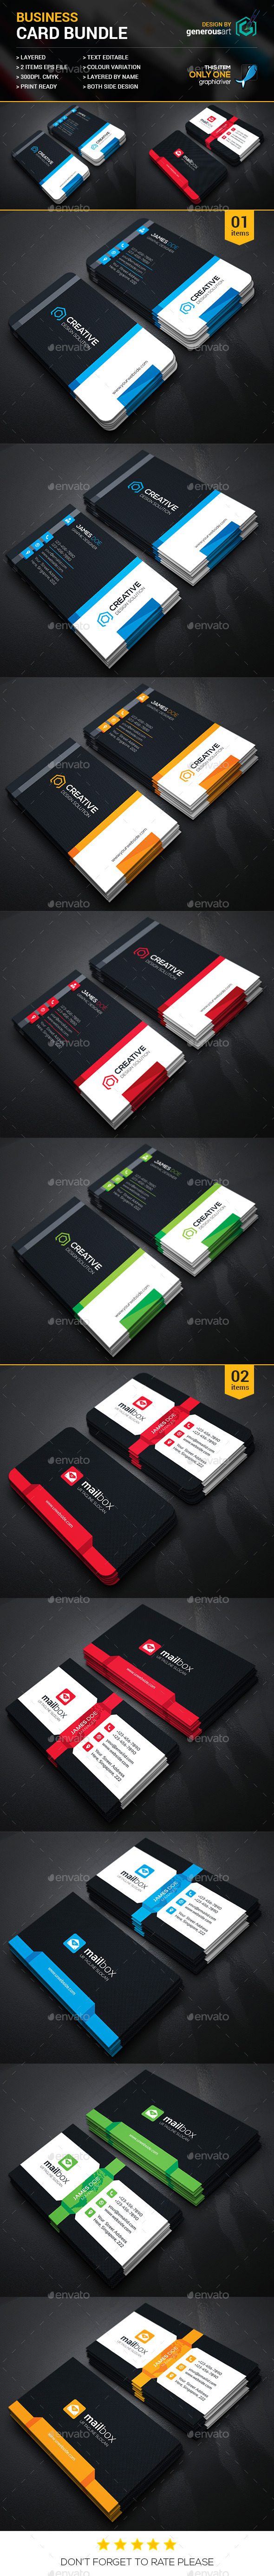 Business Card Bundle 2 in 1 vol.13